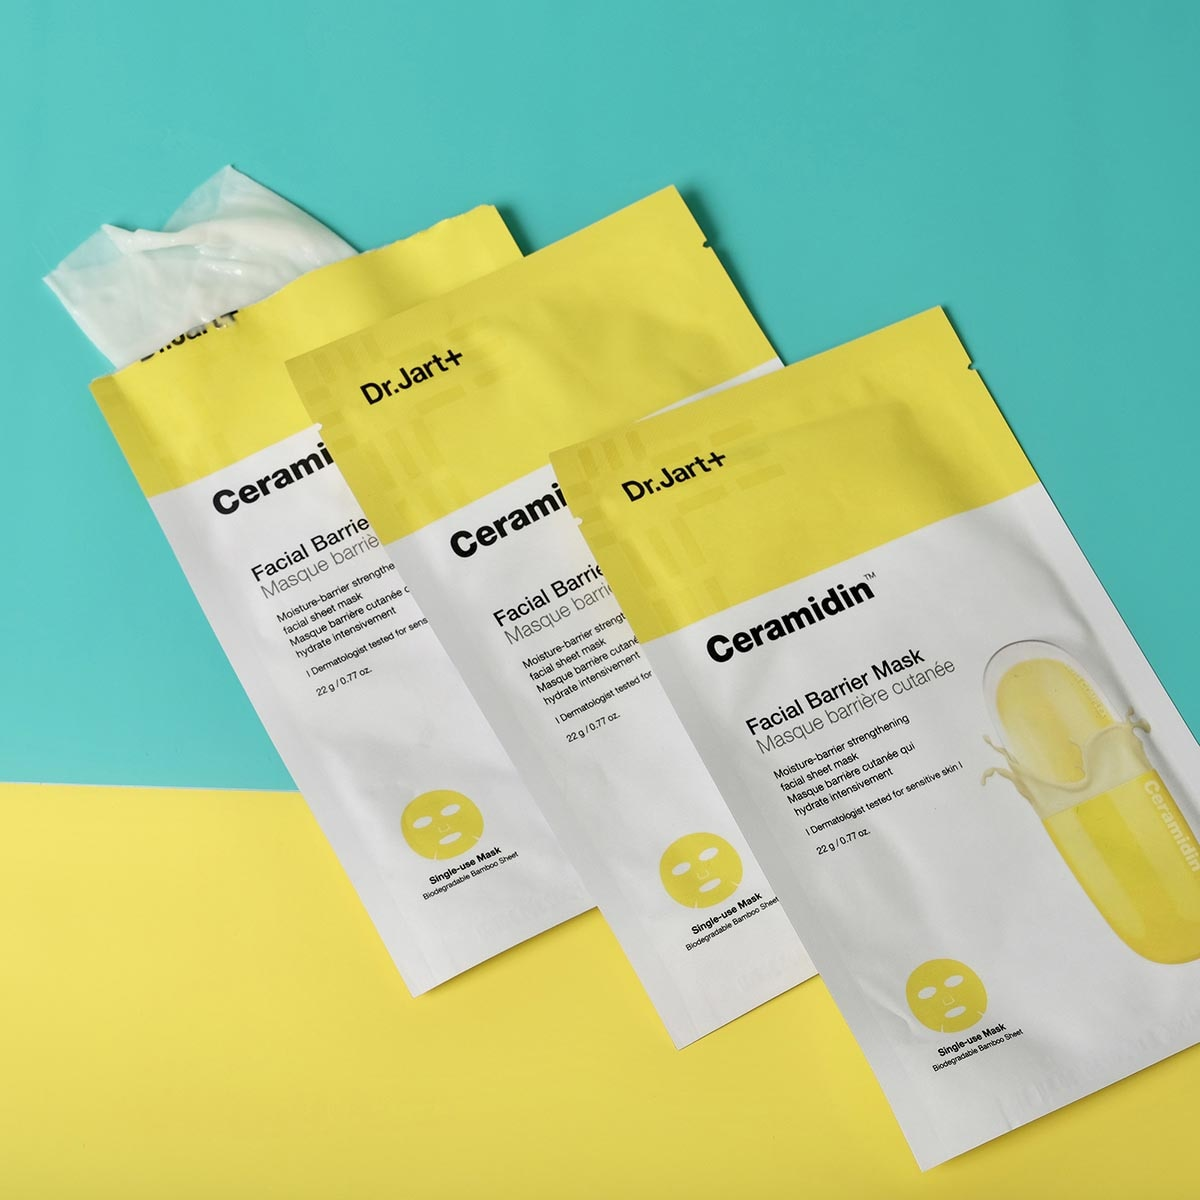 CERAMIDIN™ FACIAL BARRIER MASK